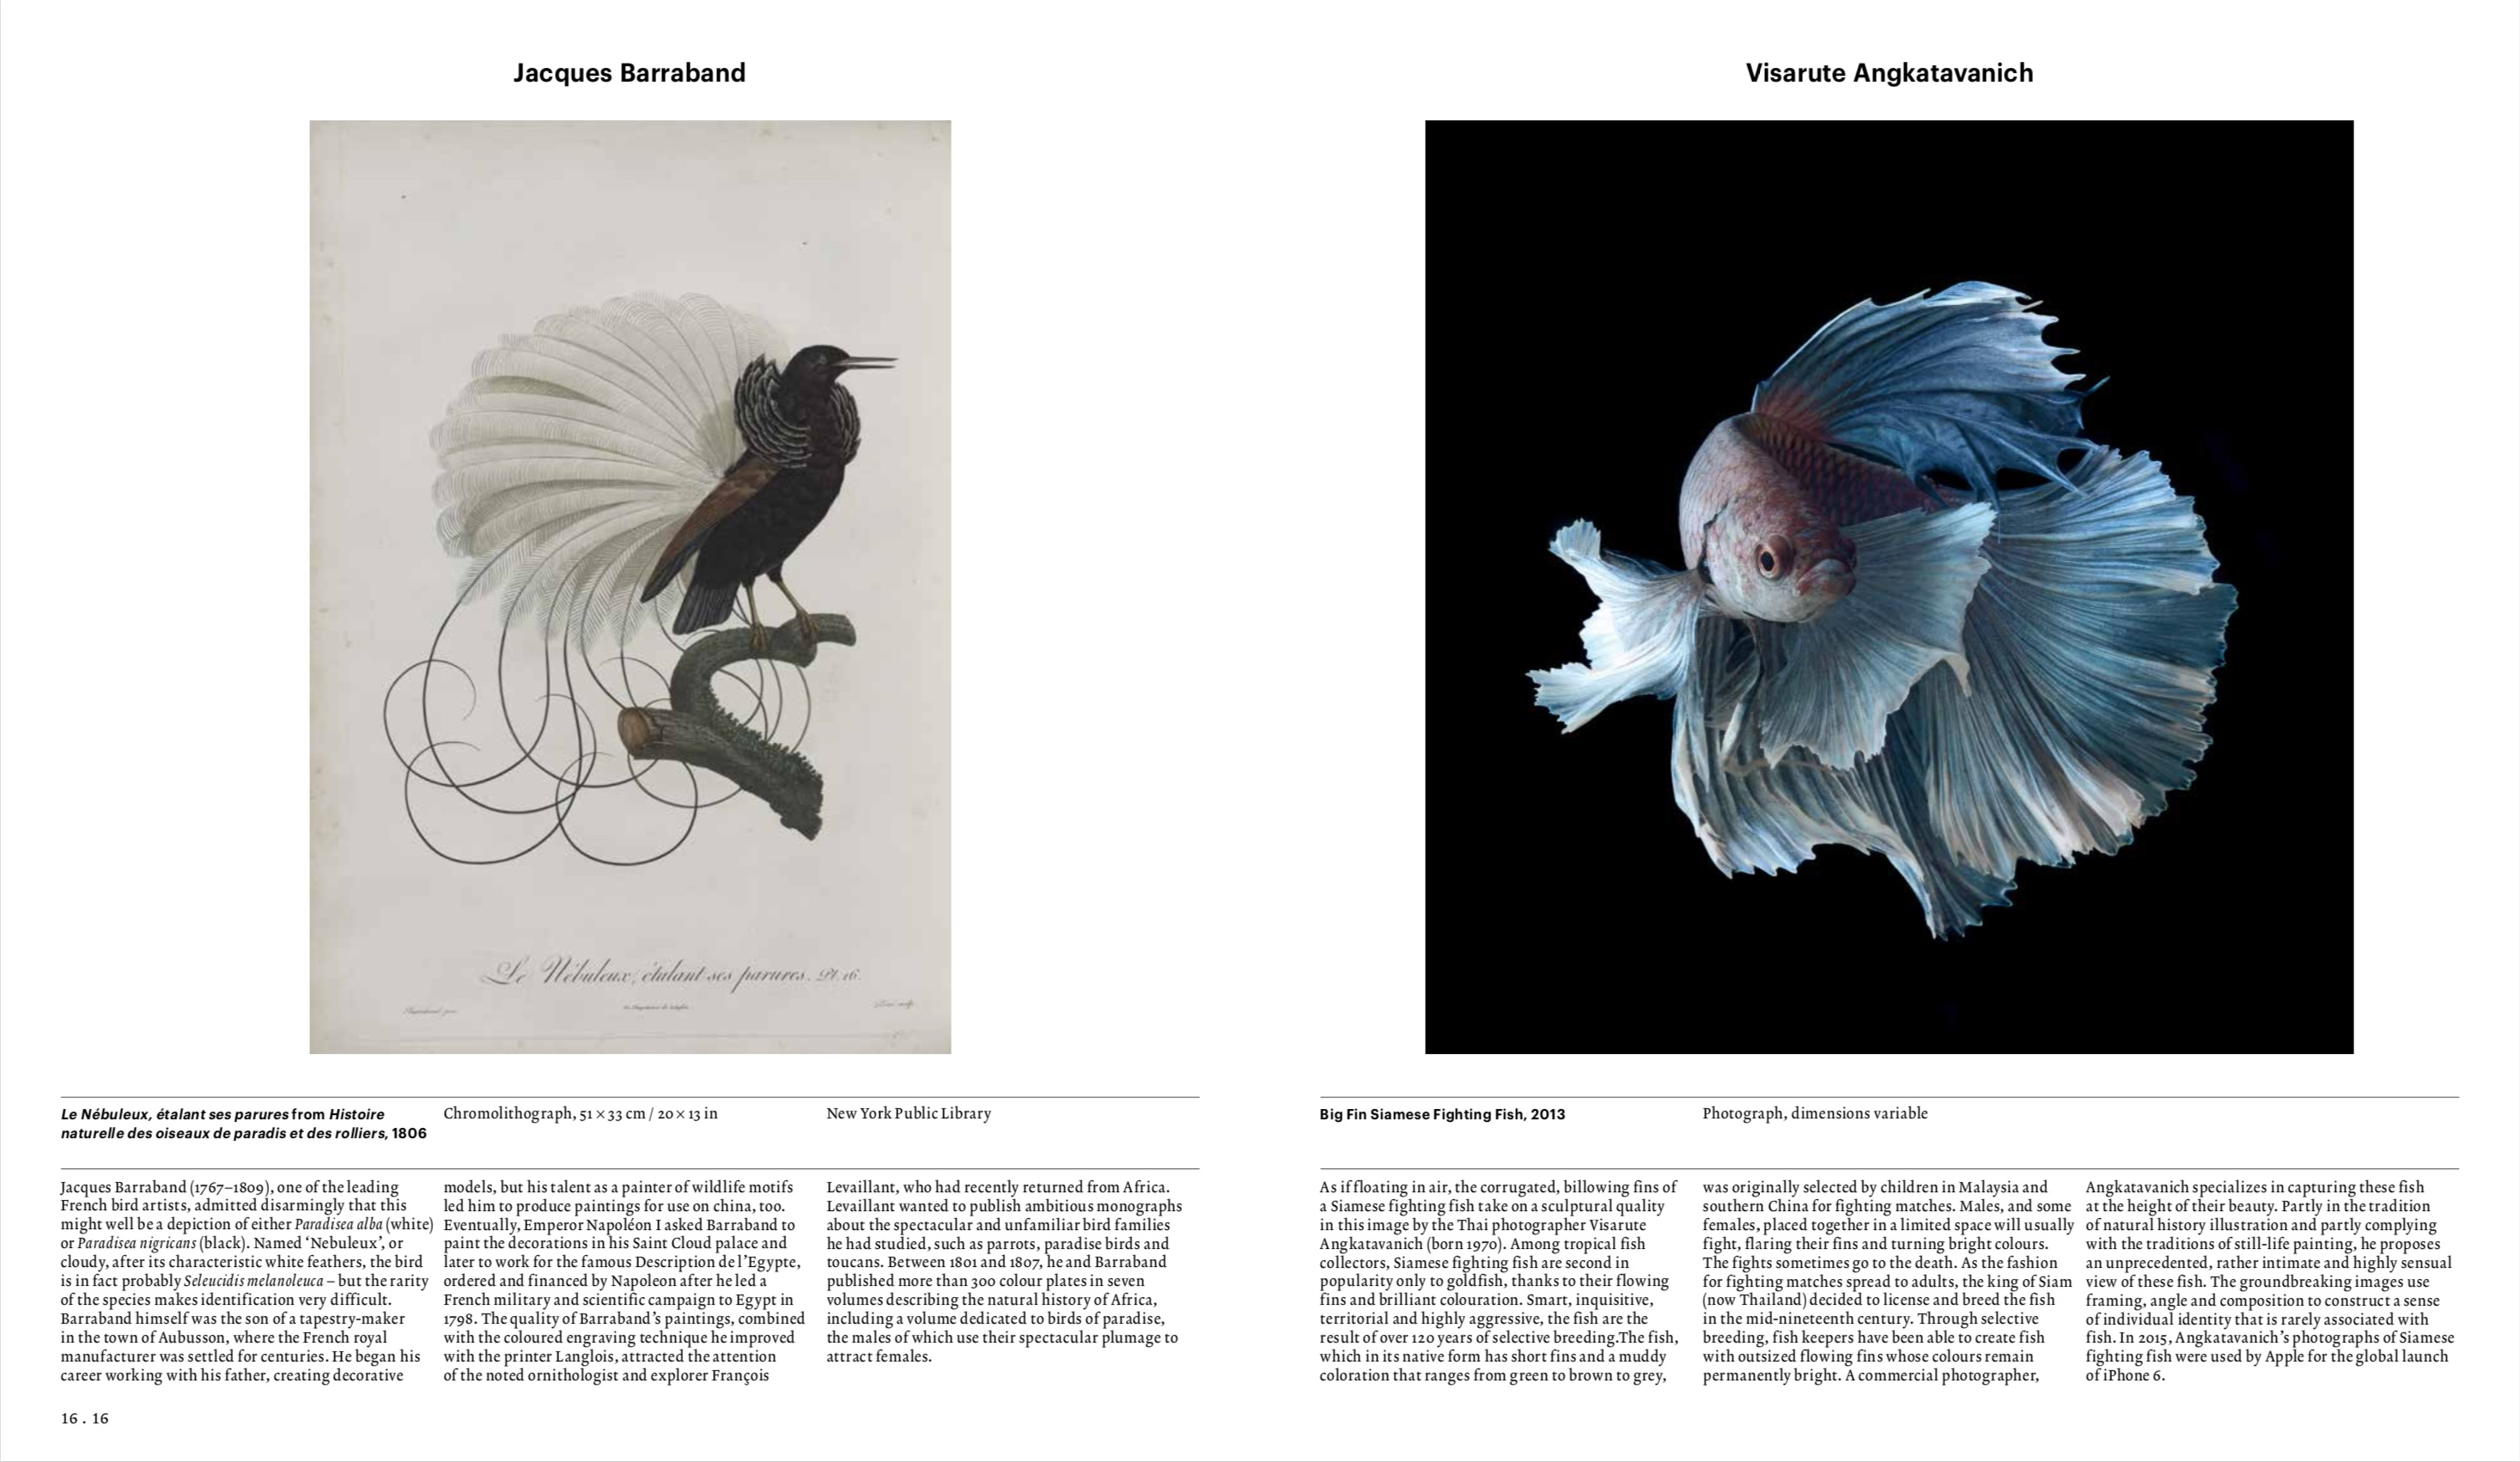 By James Hanken from Animal: Exploring the Zoological World copyright Phaidon 2018